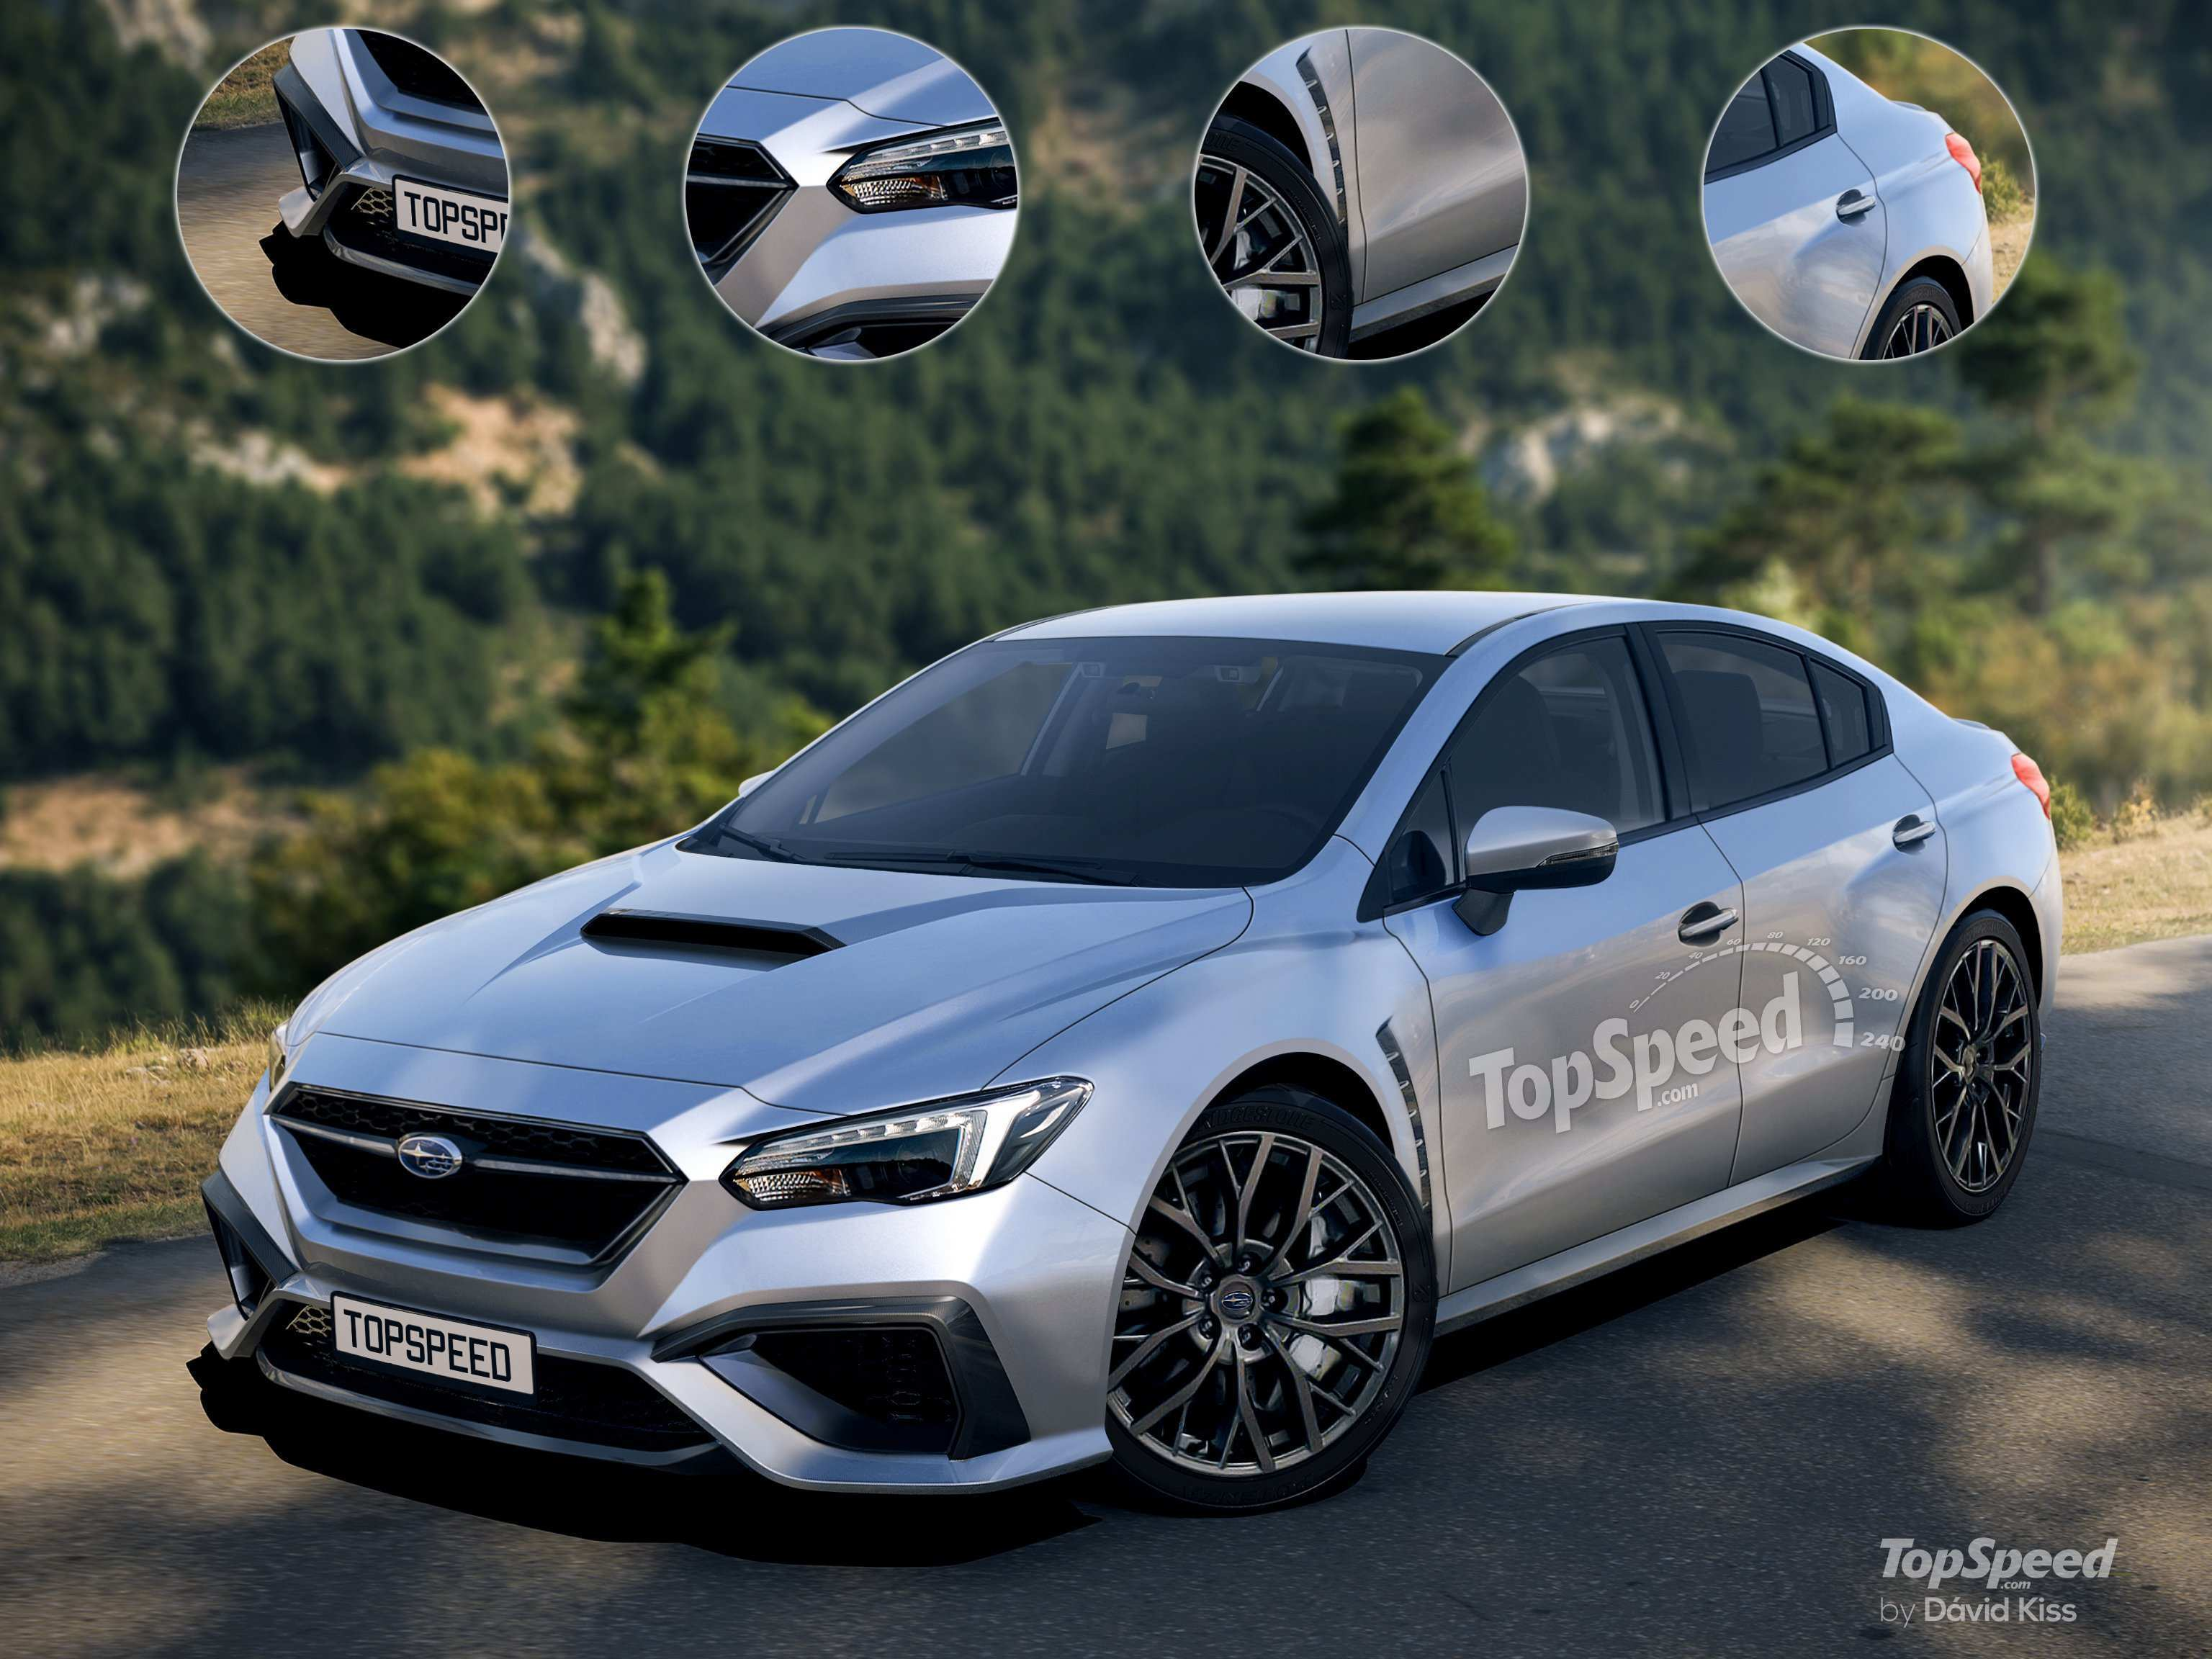 57 Great Subaru Wrx 2020 Exterior New Concept with Subaru Wrx 2020 Exterior